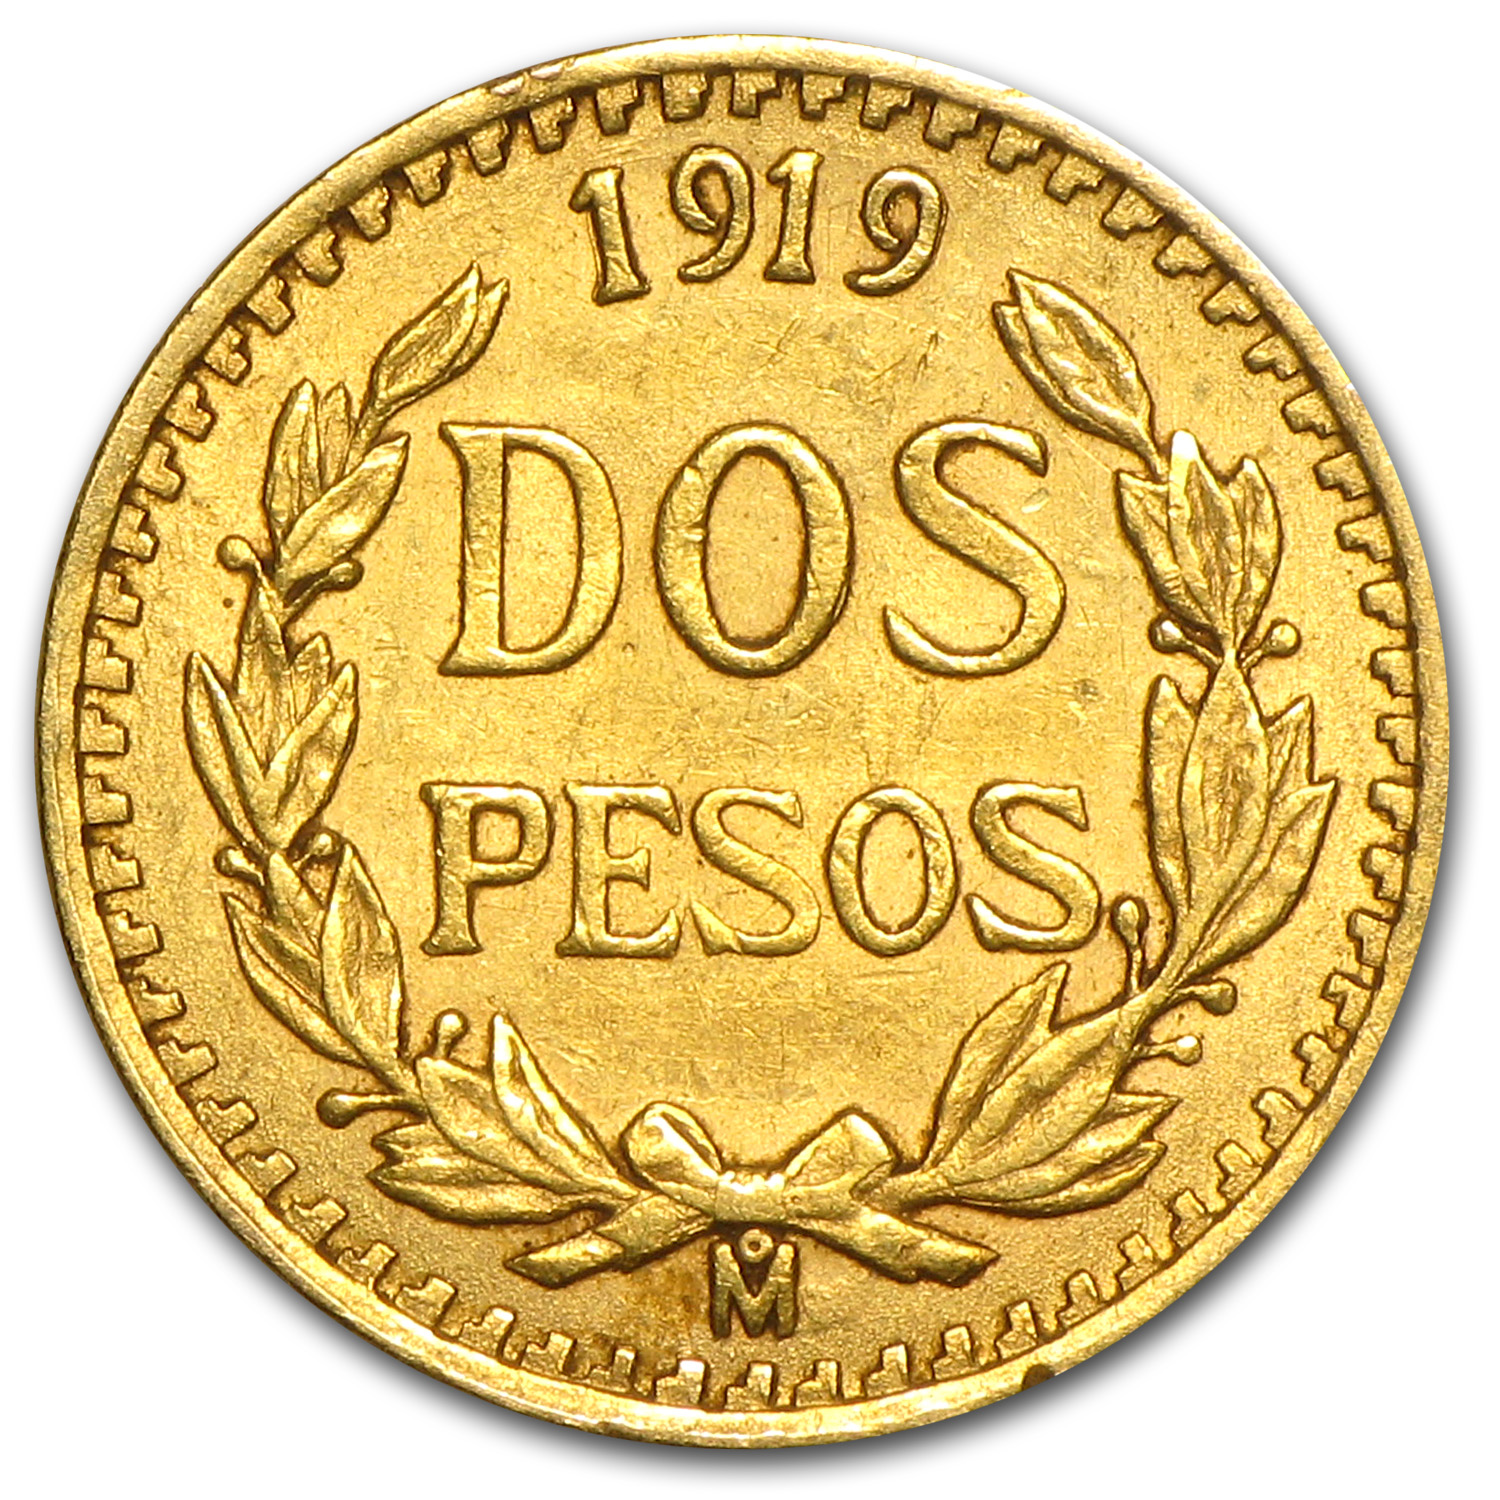 1919 Mexico Gold 2 Pesos Almost Uncirculated